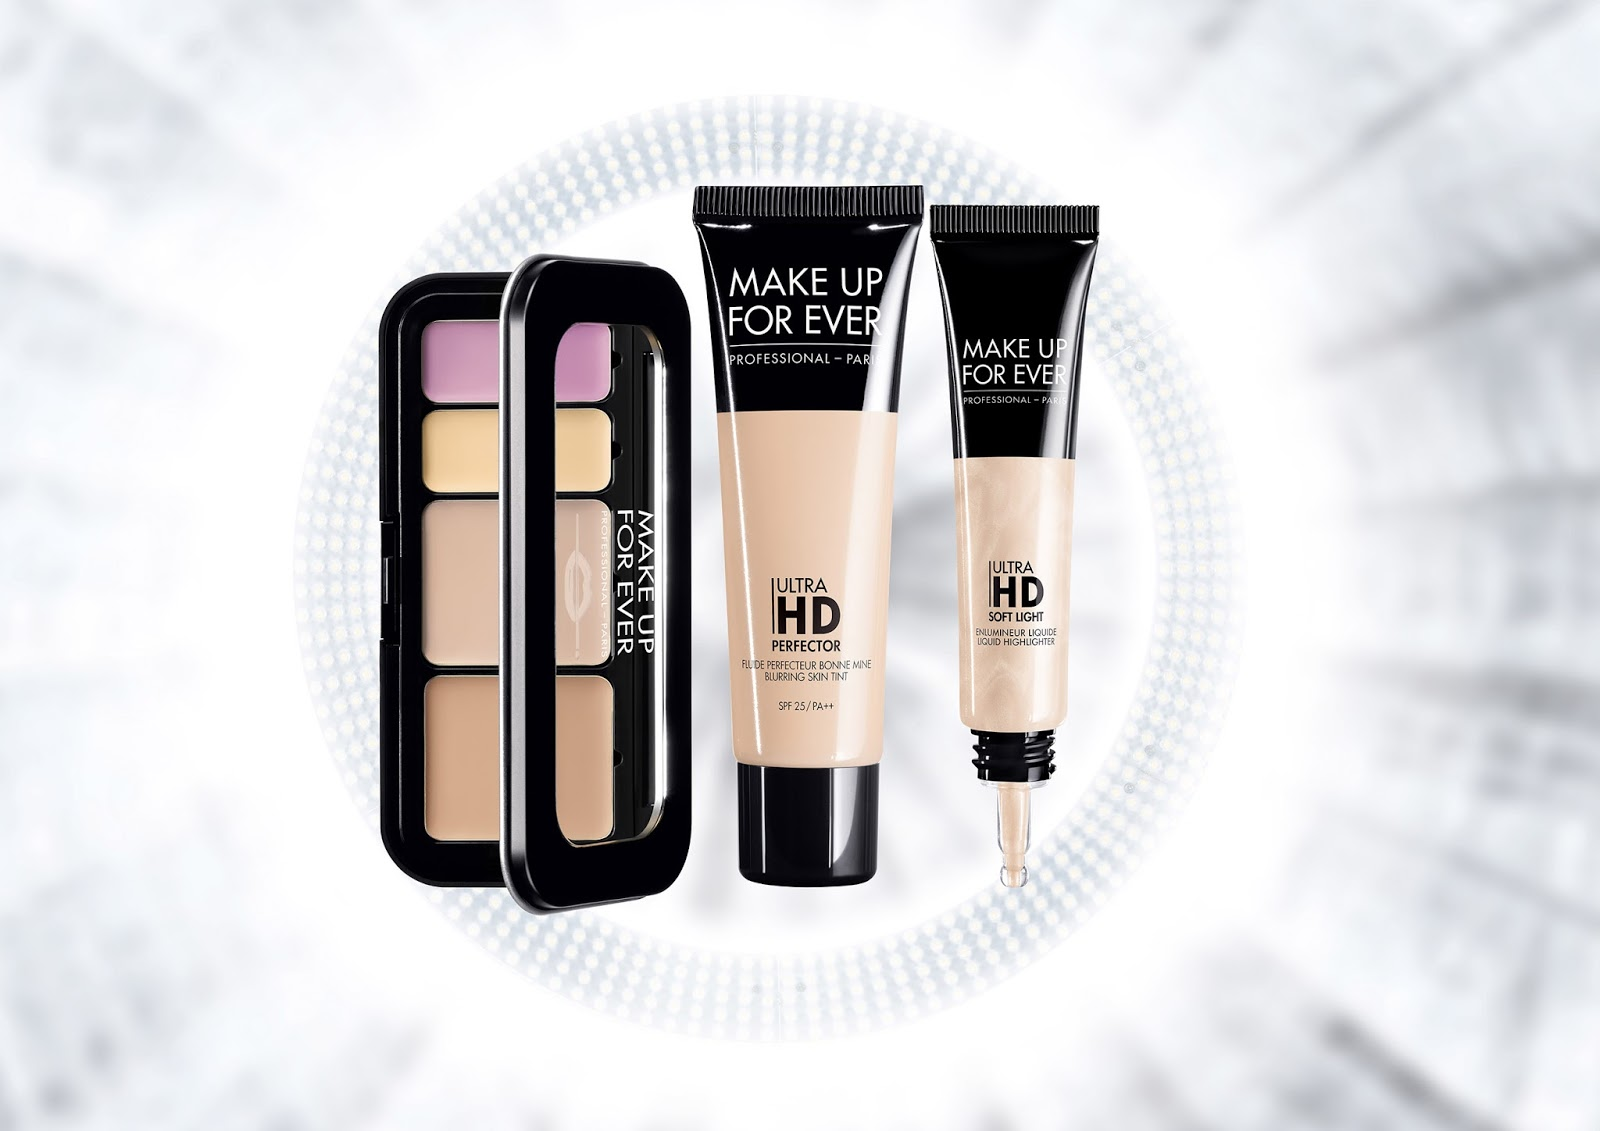 make-up-for-ever-ultra-hd